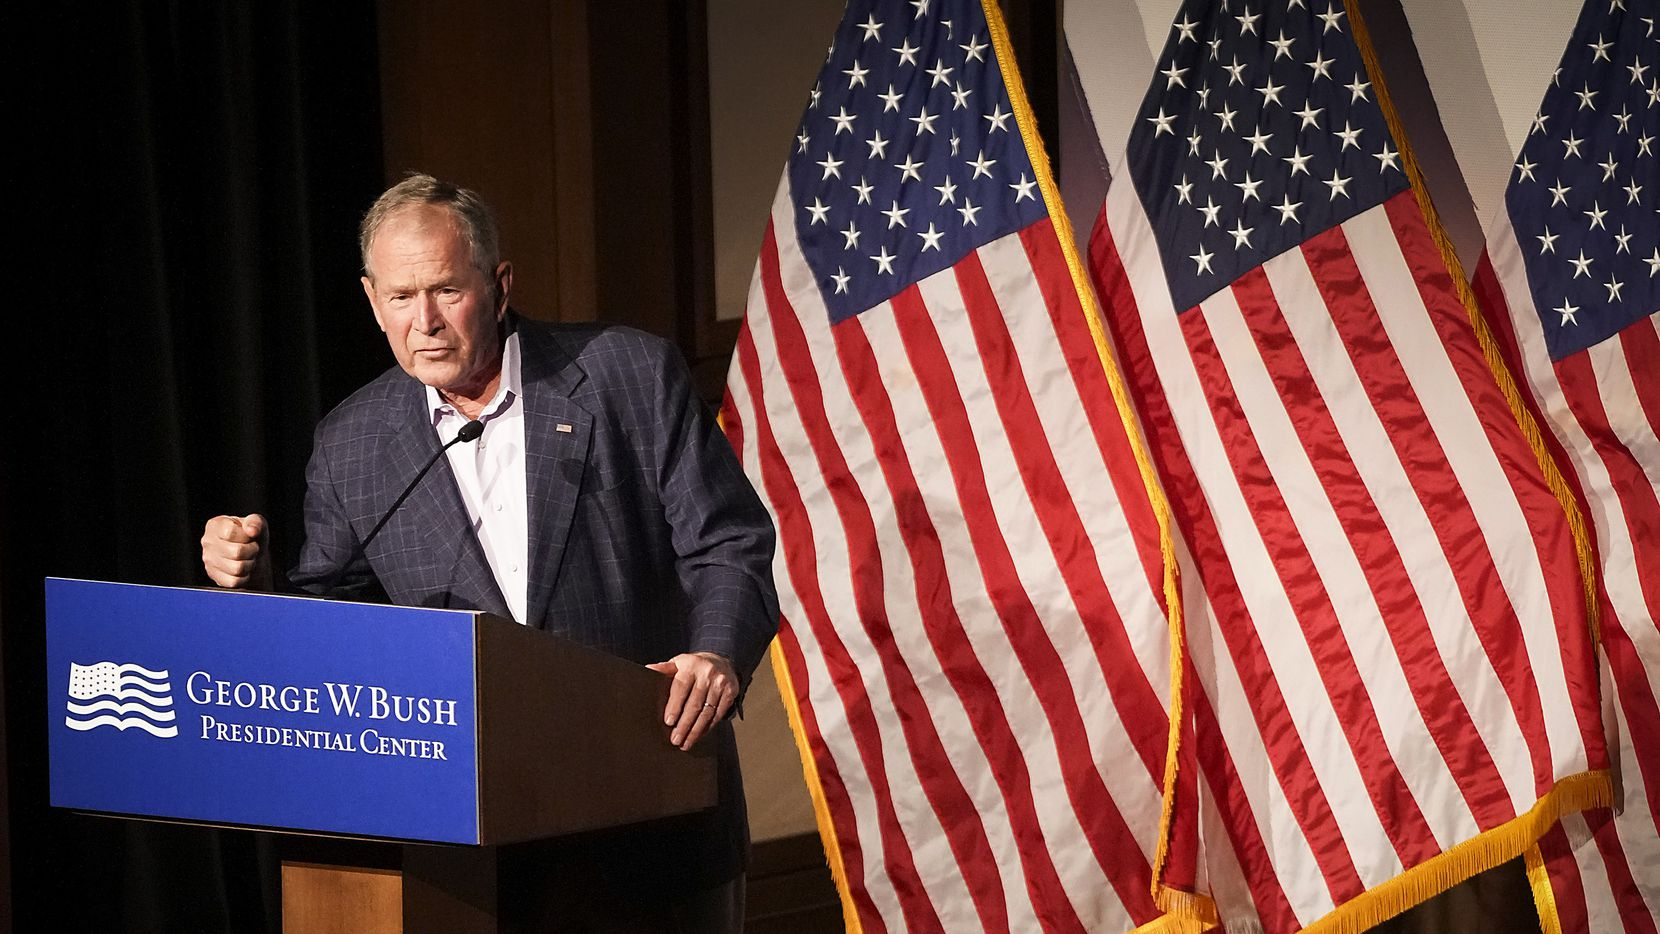 """Former President George W. Bush deliver's remarks before a screening of the new documentary """"9/11: Inside the President's War Room"""" at the George W. Bush Presidential Center on Saturday, Sept. 11, 2021."""